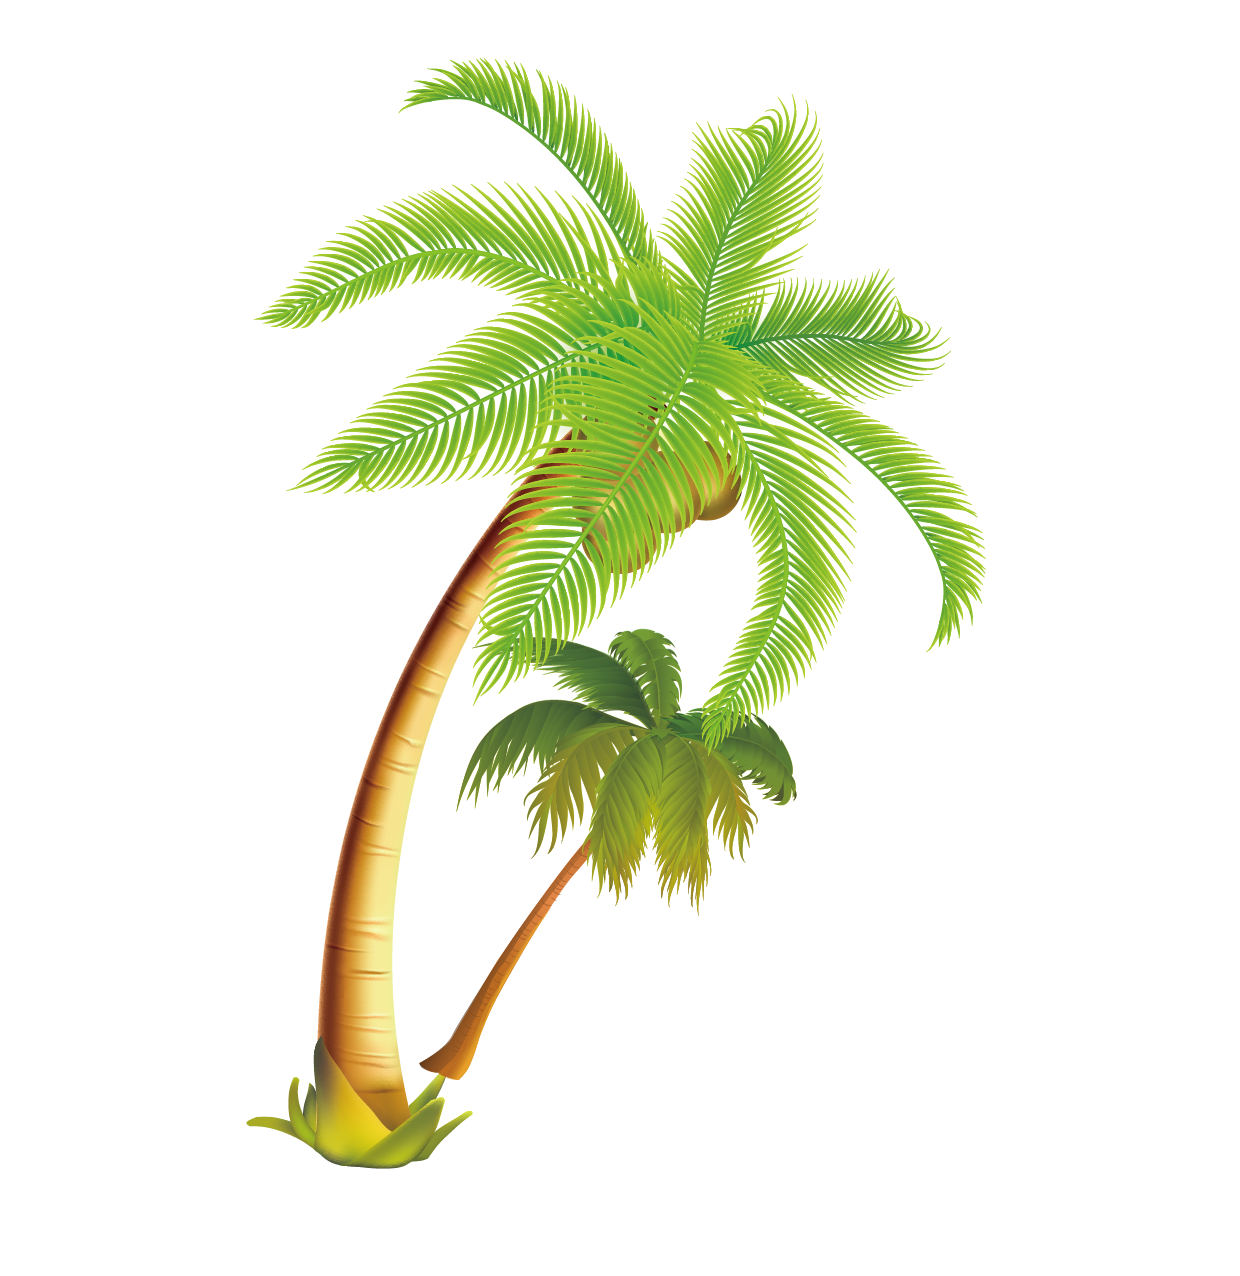 Coconut tree png. Arecaceae tropical vector material